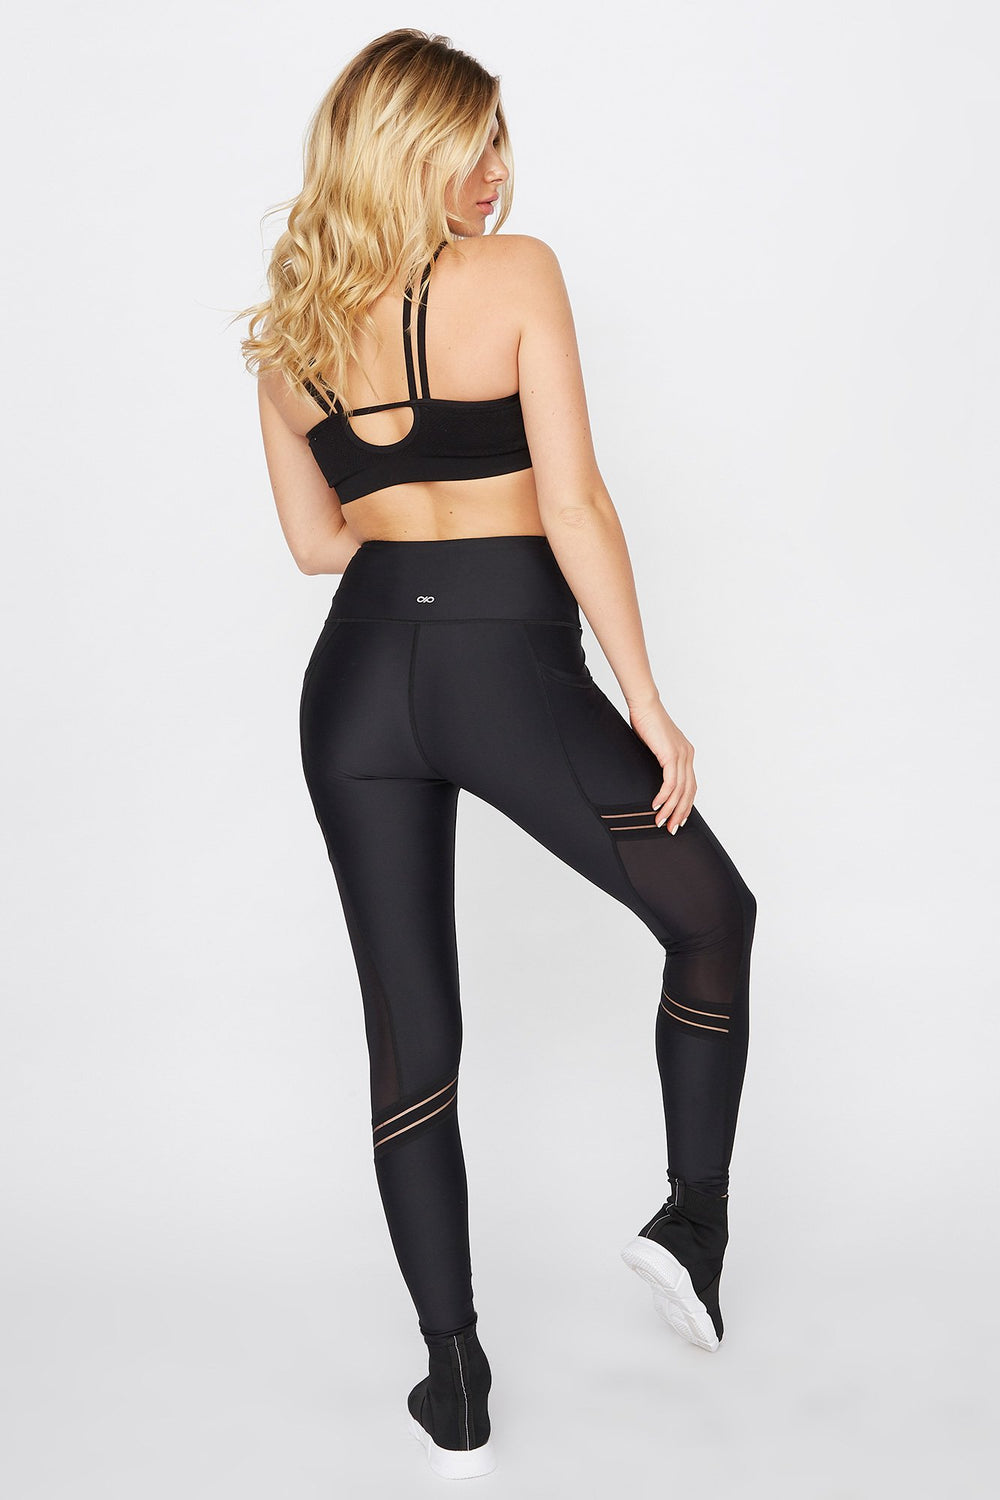 Infinite High-Rise Mesh Slice Active Legging Black